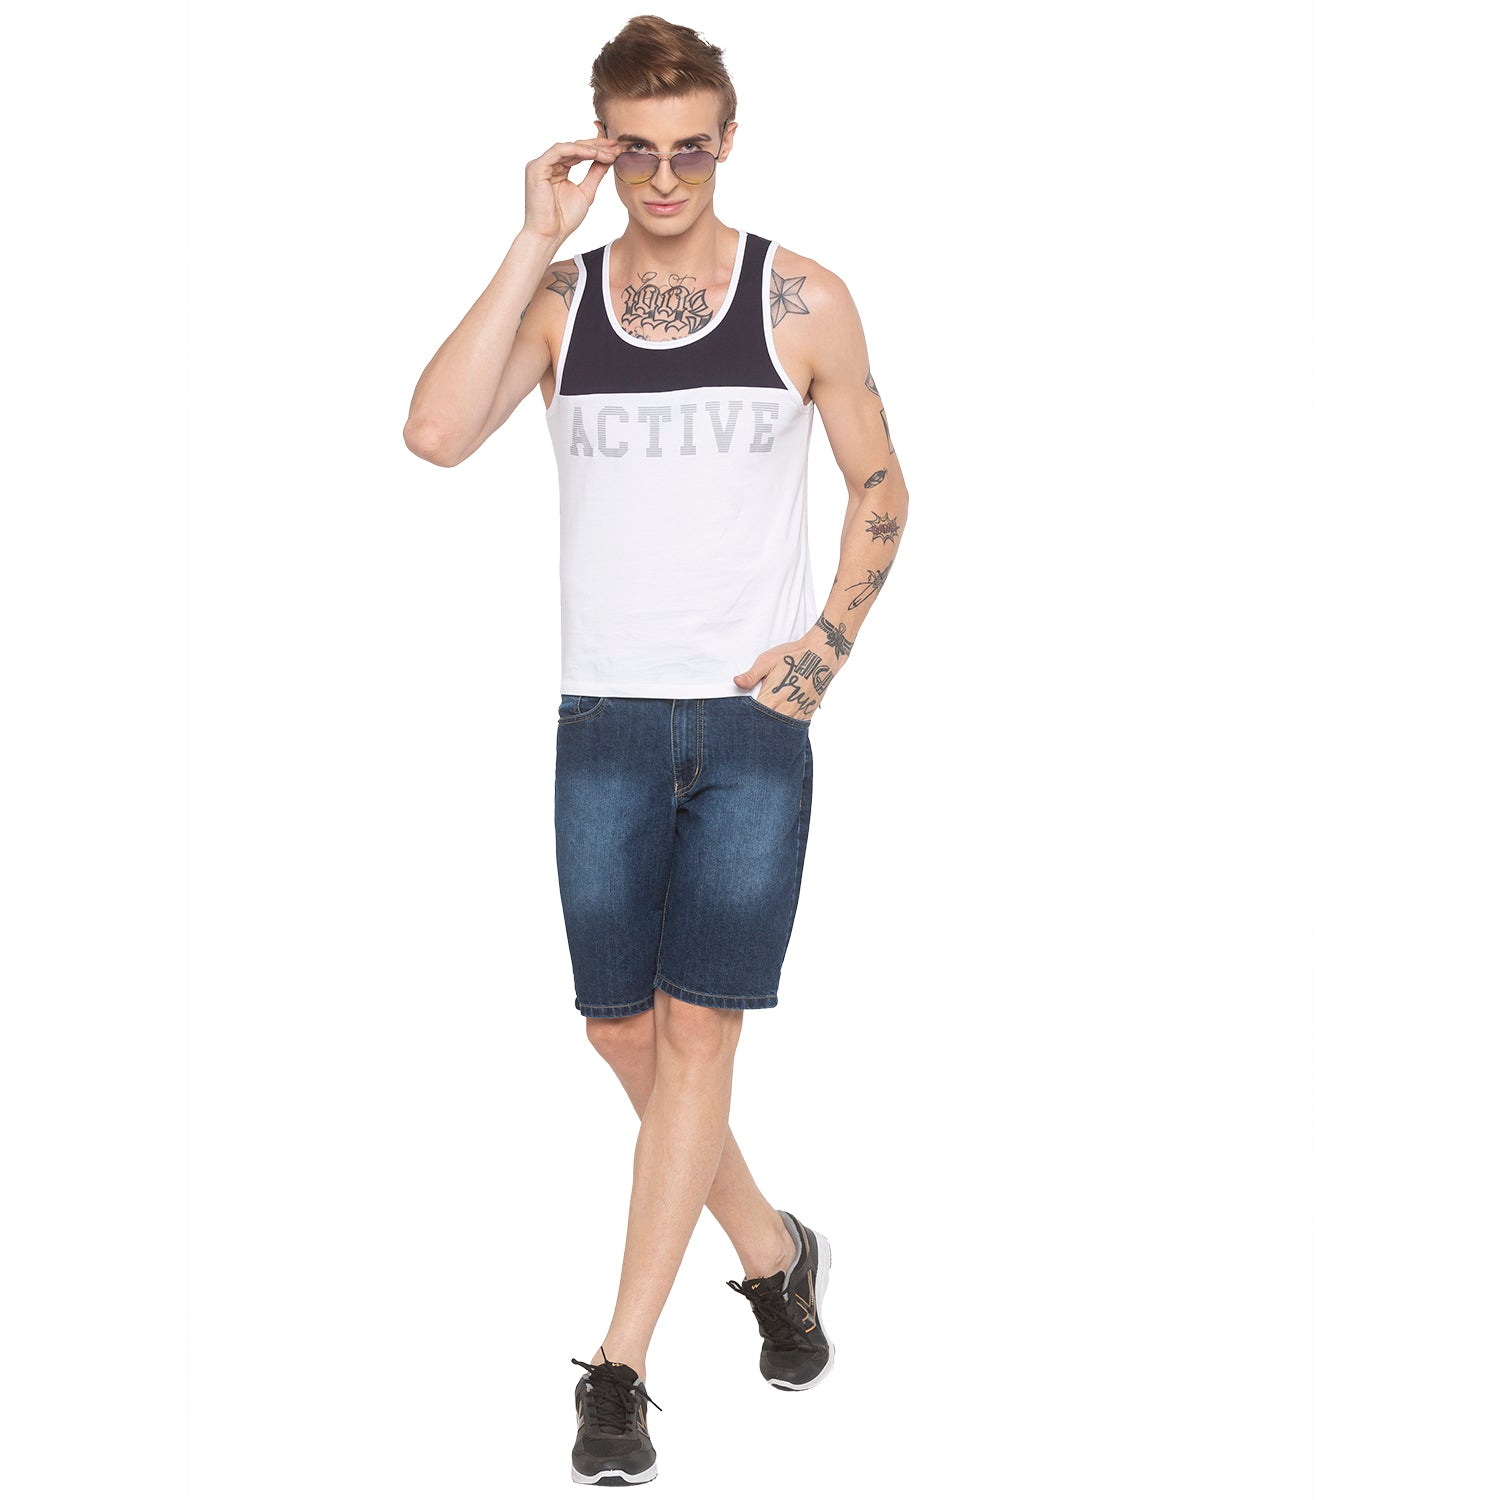 Racerback Sleeveless White T-shirt-4